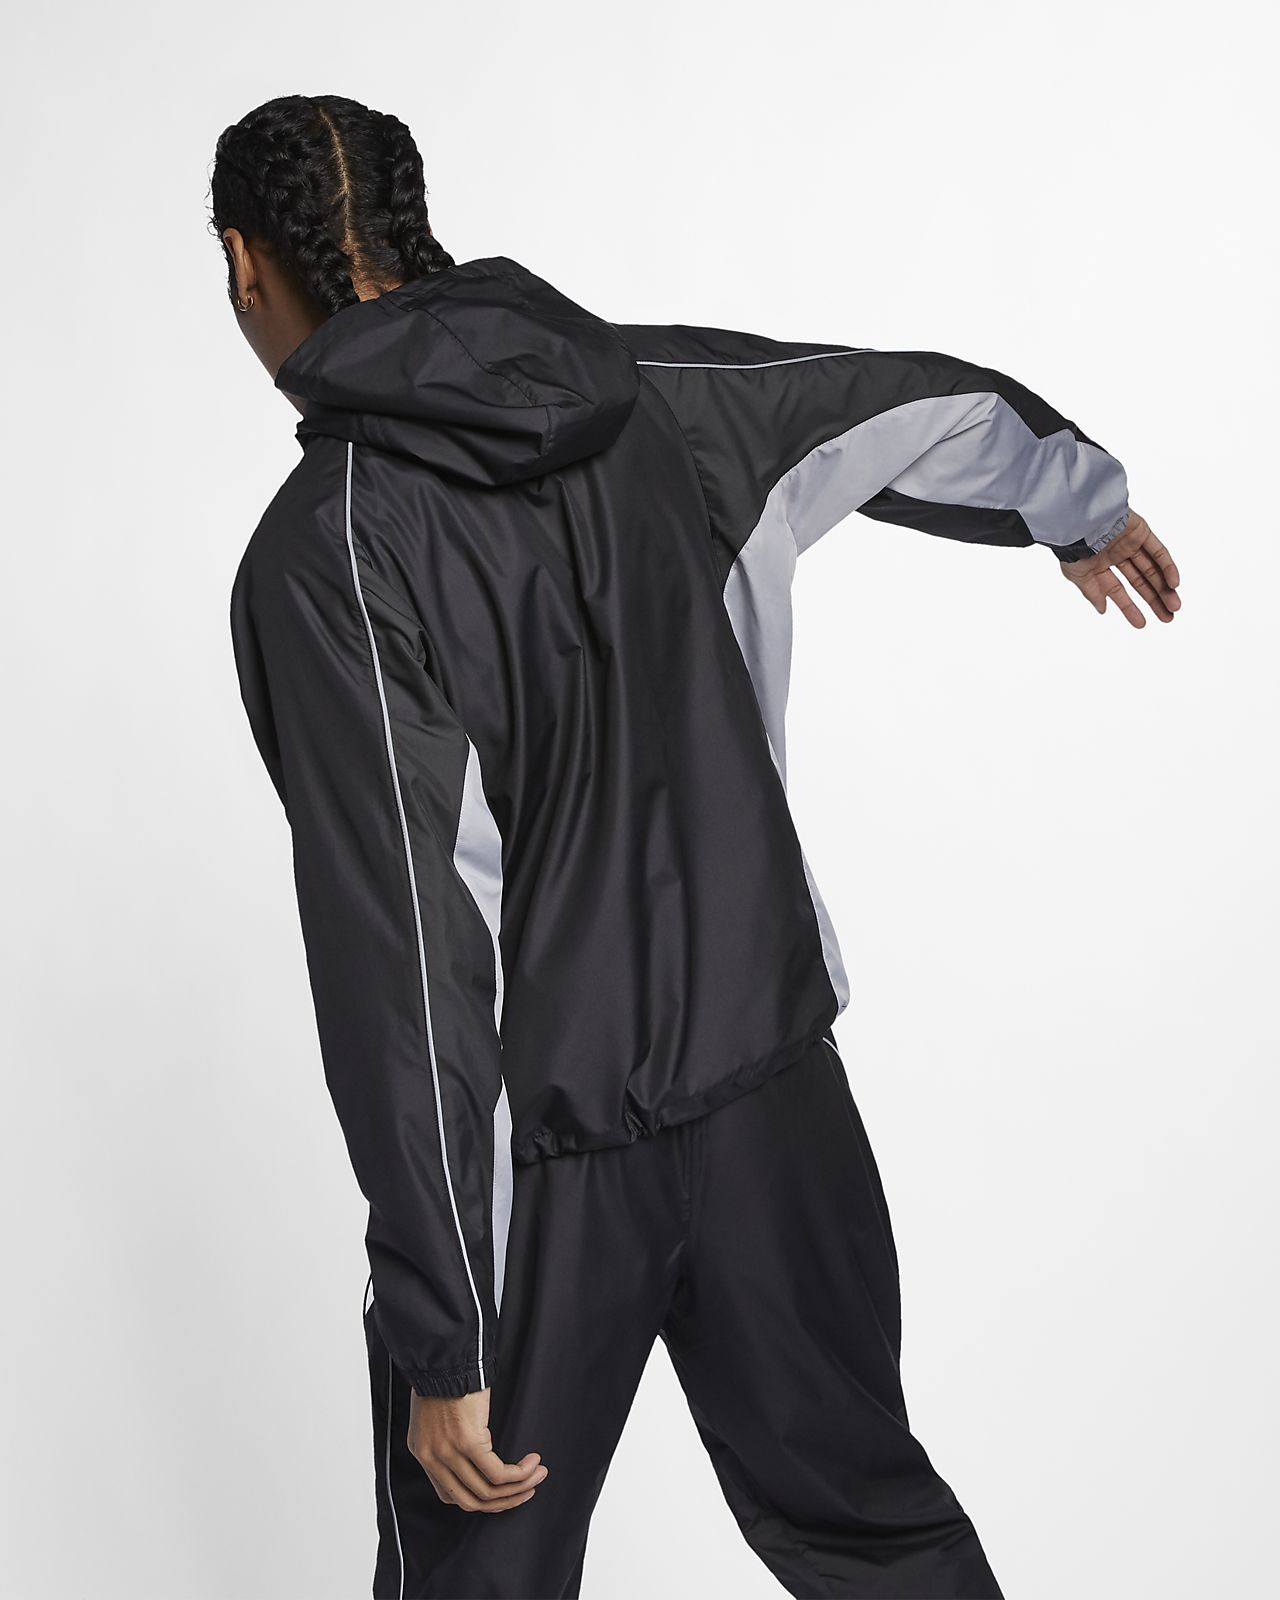 73336ad2a1 NikeLab Collection Tn Men's Hooded Track Jacket. Nike.com CA